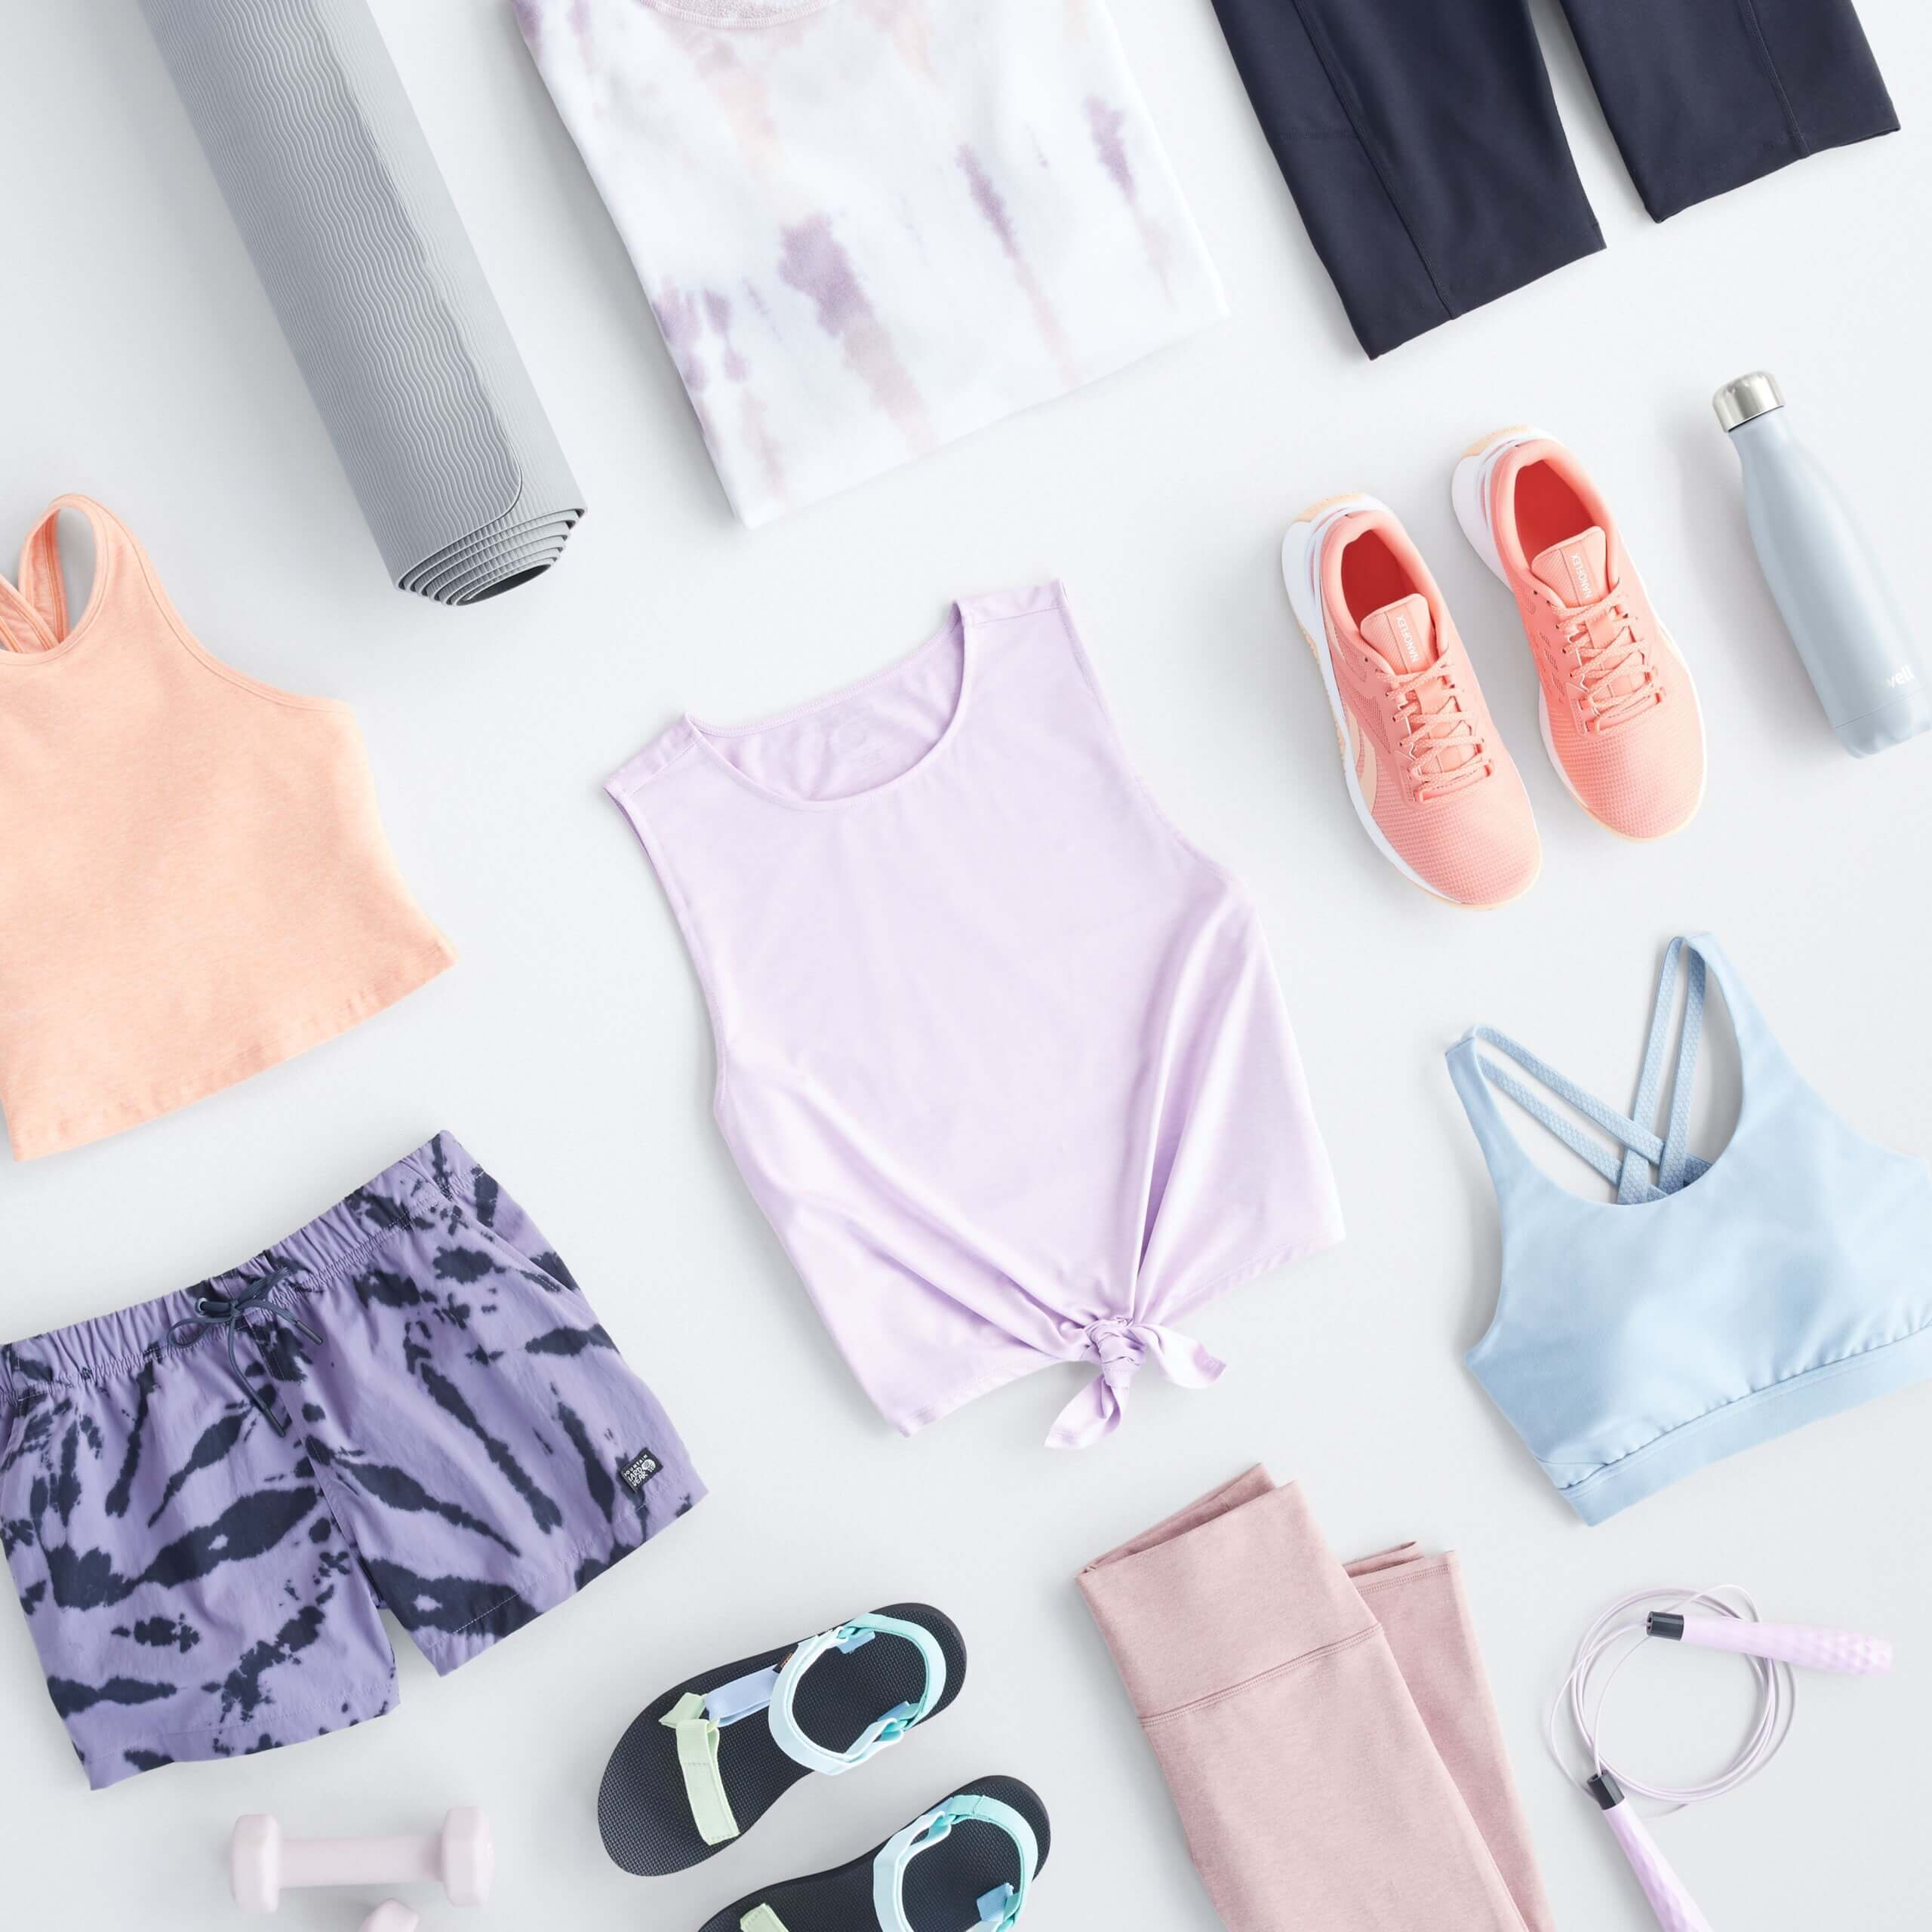 Stitch Fix Women's laydown featuring athletic tops in peach, lilac and baby blue, purple athletic shorts, navy bike shorts, pink sneaker and sandals.